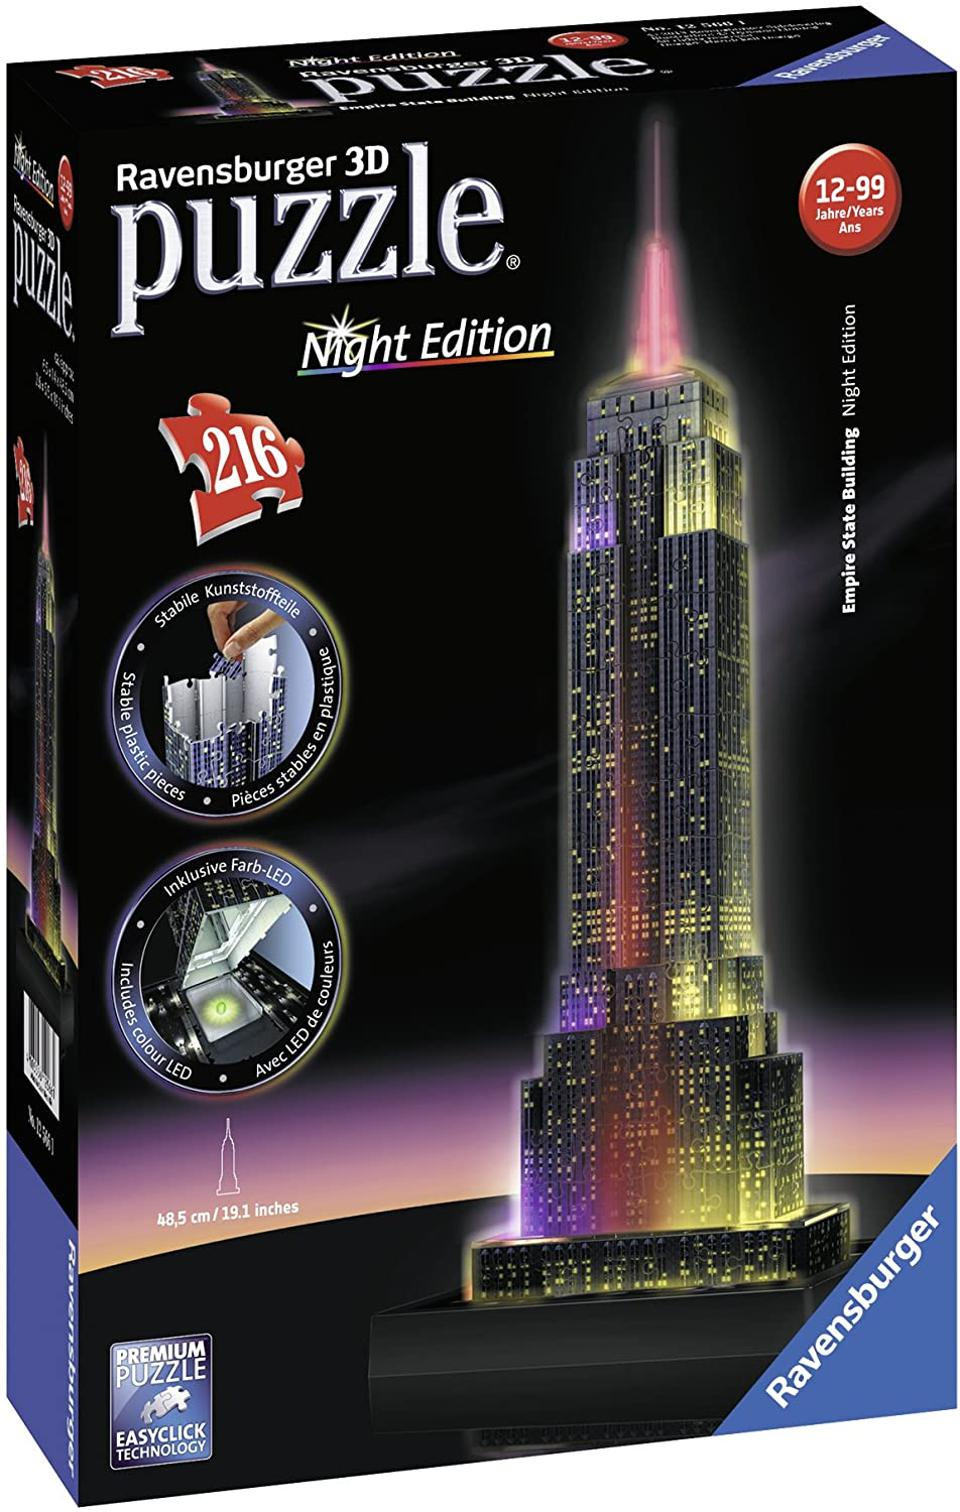 Ravensburger Empire State Building - Night Edition - 216 Piece 3D Jigsaw Puzzle for